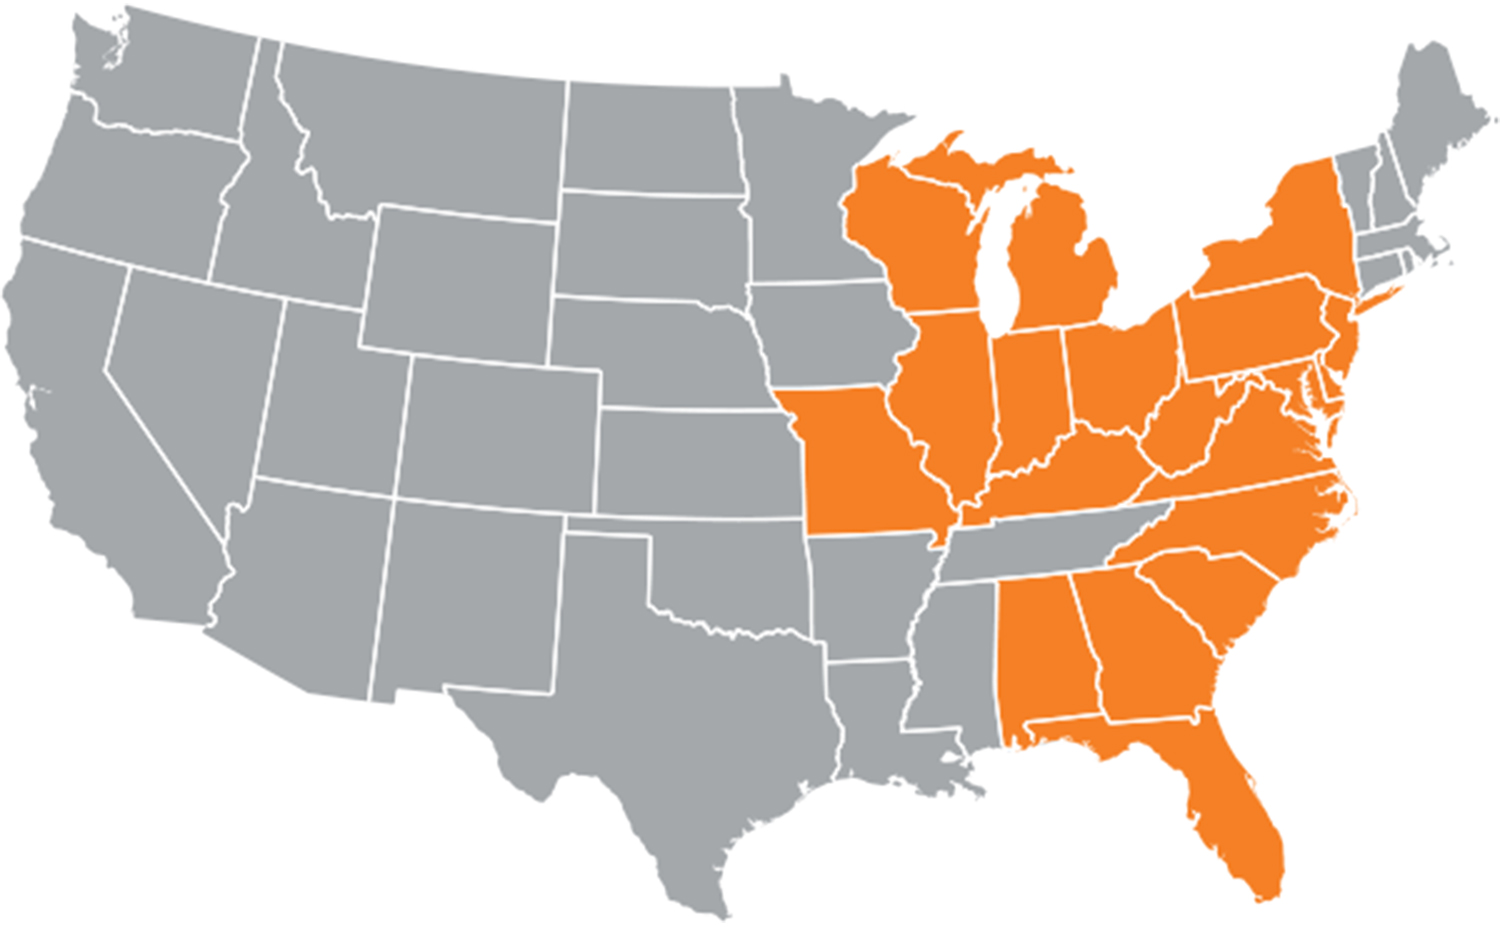 PNC bank locations across the U.S.